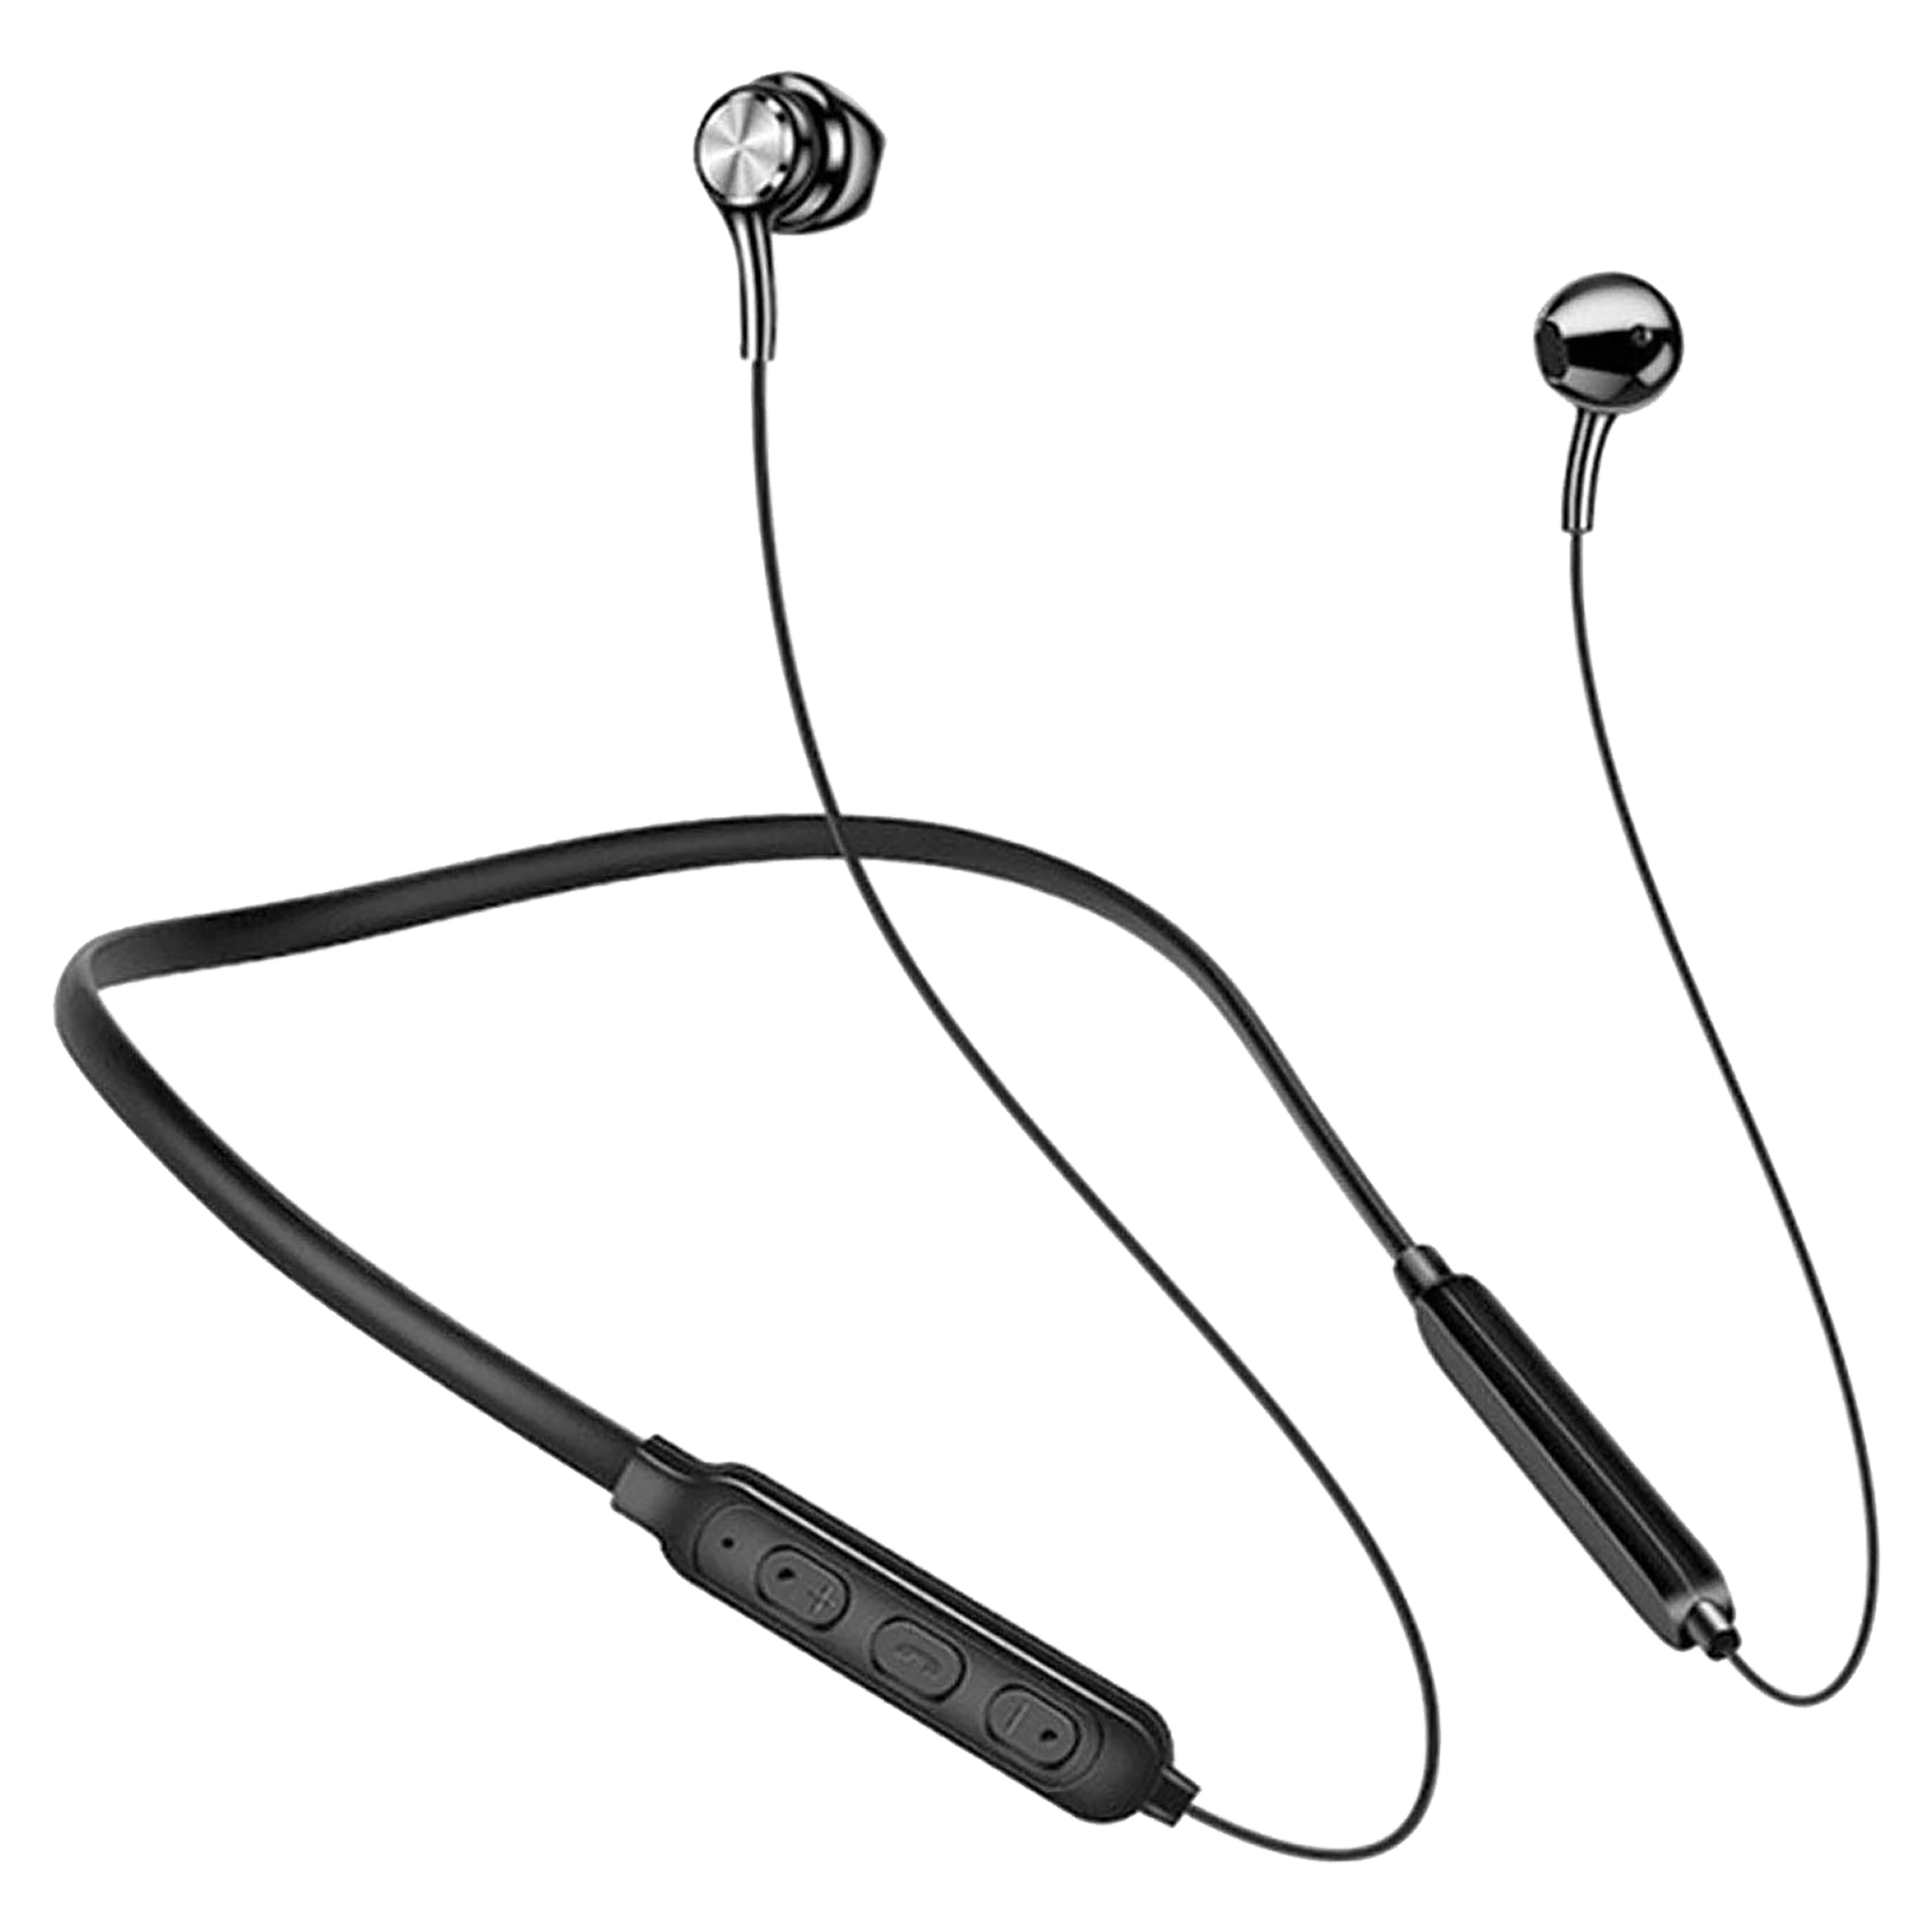 Soopii M8 In-Ear Active Noise Cancellation Wireless Earphone with Mic (Bluetooth 4.1, IPX5 Sweat Resistant, Black)_1